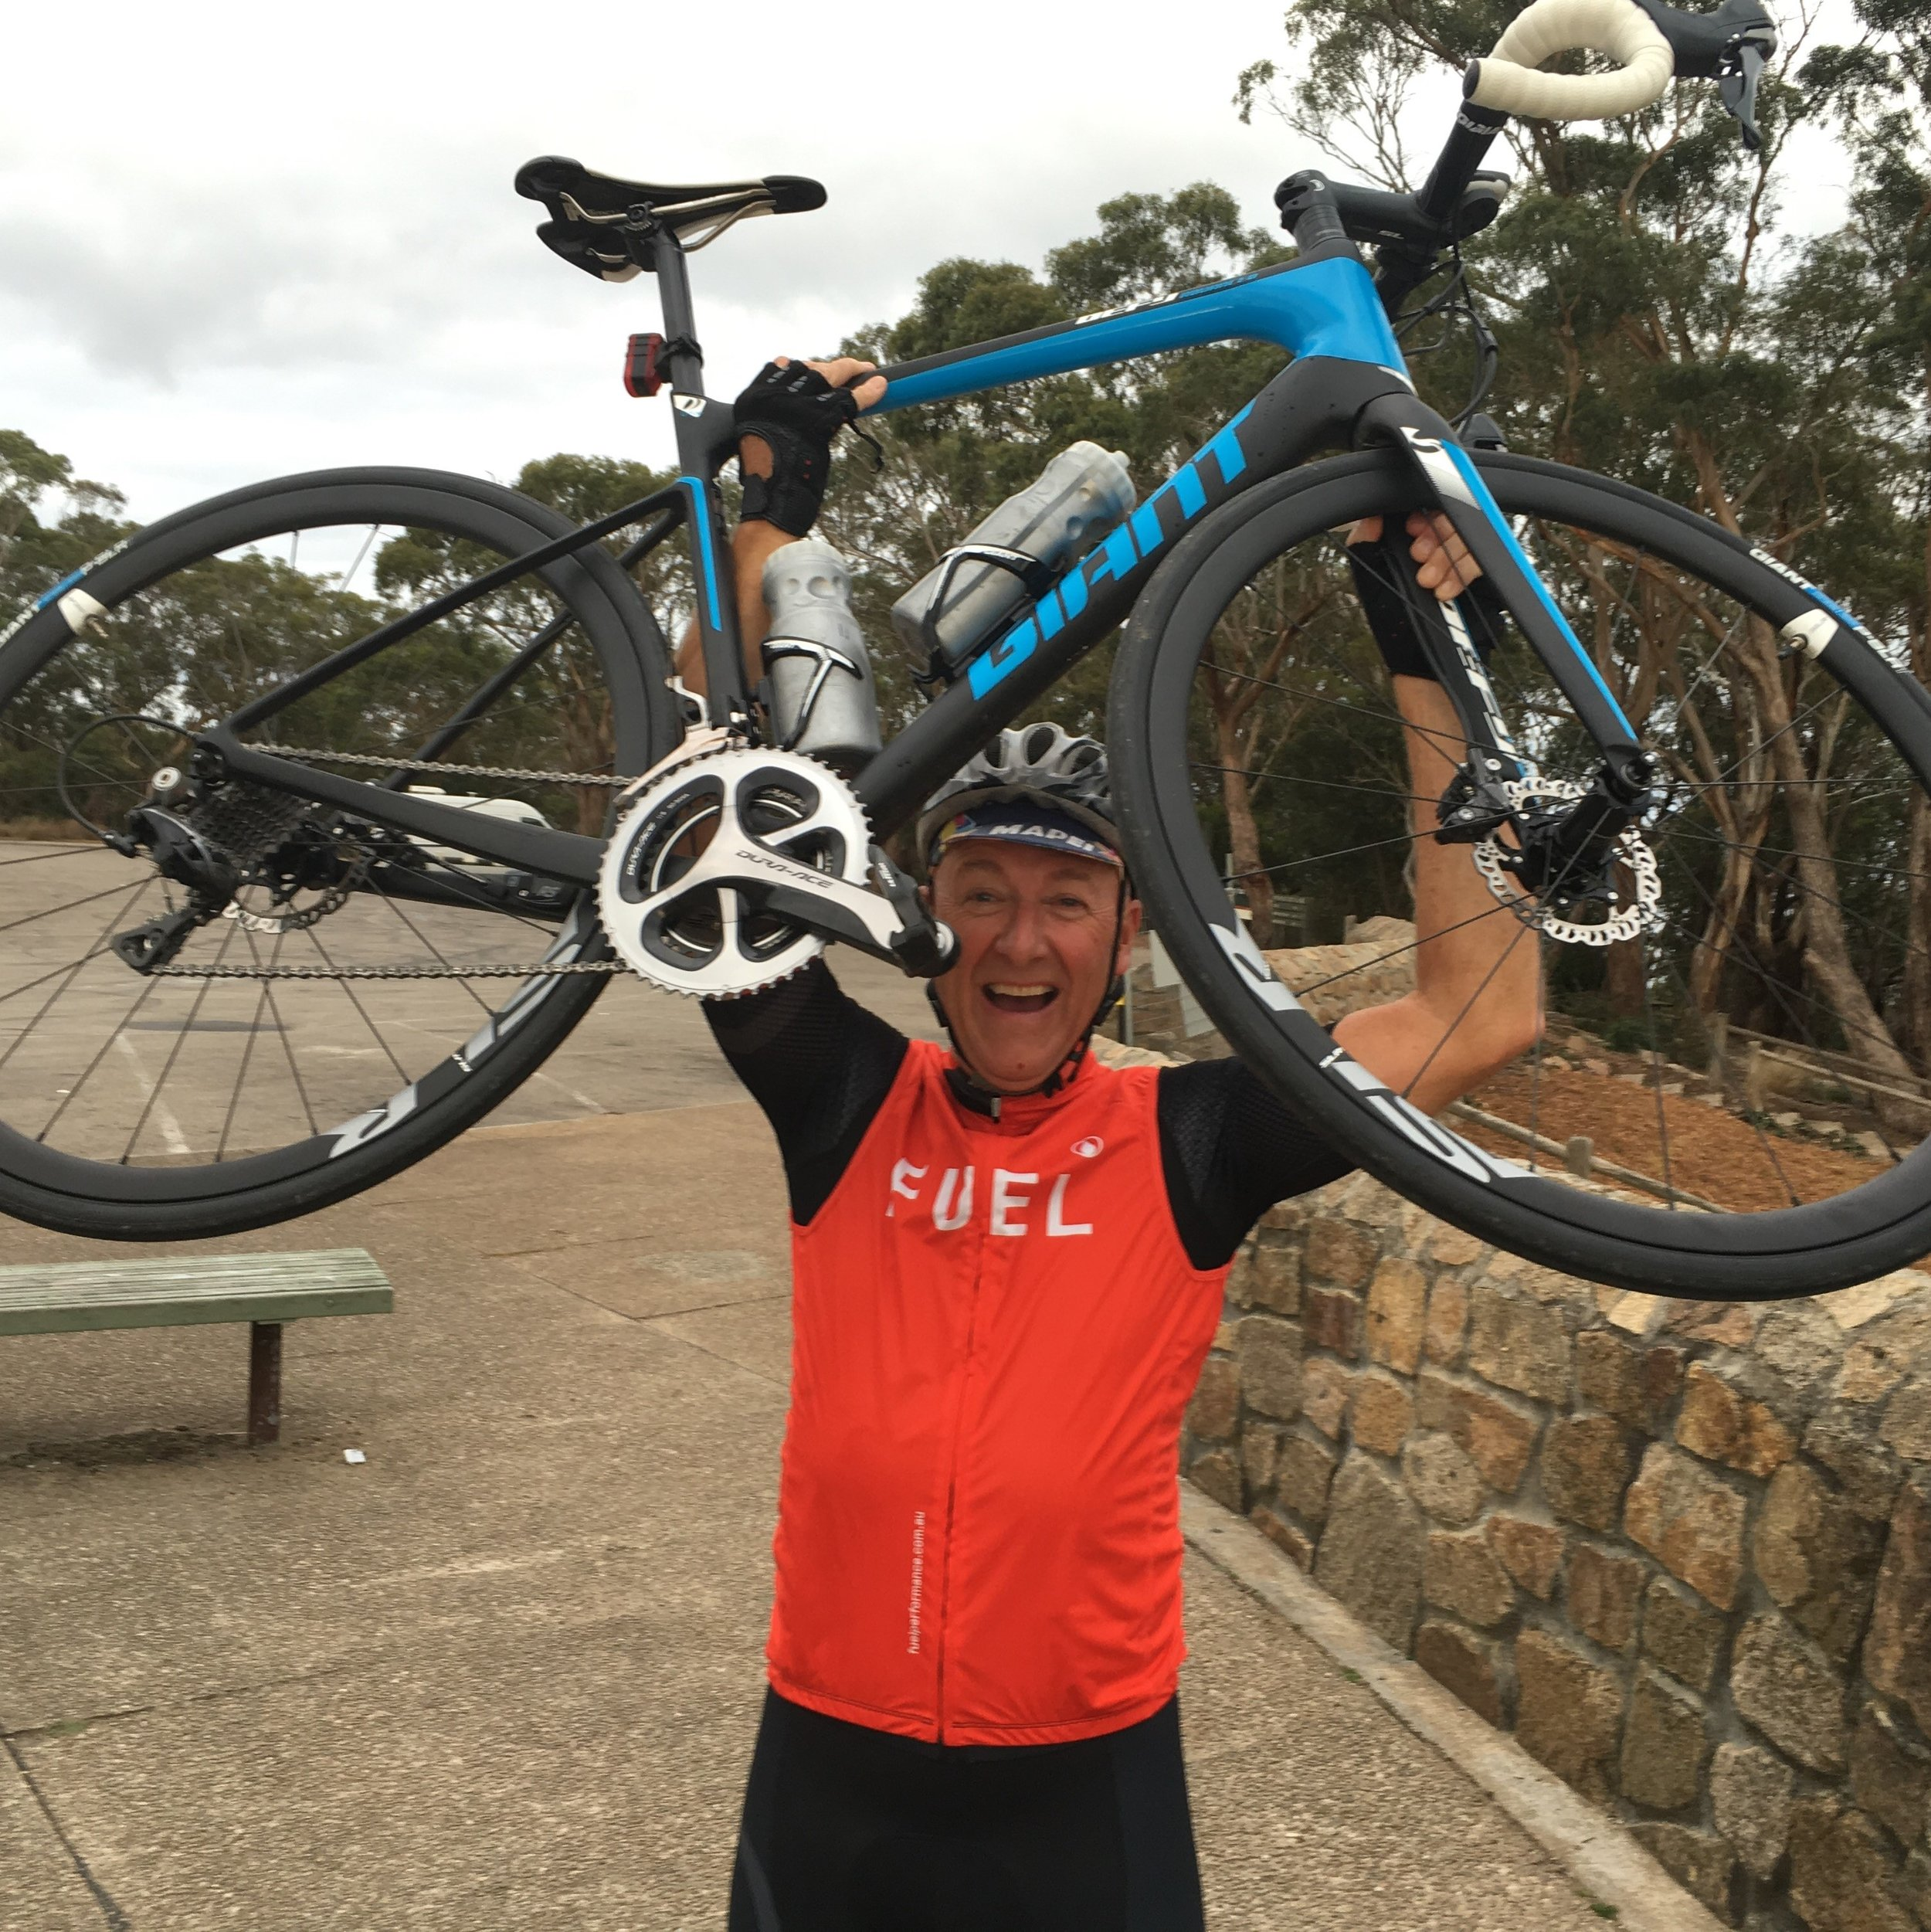 Peter Lusk - I want to be part of Cycle4Change's 2018 ride, because it will change kids' lives. Every child is valuable and deserves to live an outstanding life. Southern Cross helps kids most in need overcome adversity and have a great hope for the future. I want to be part of that!